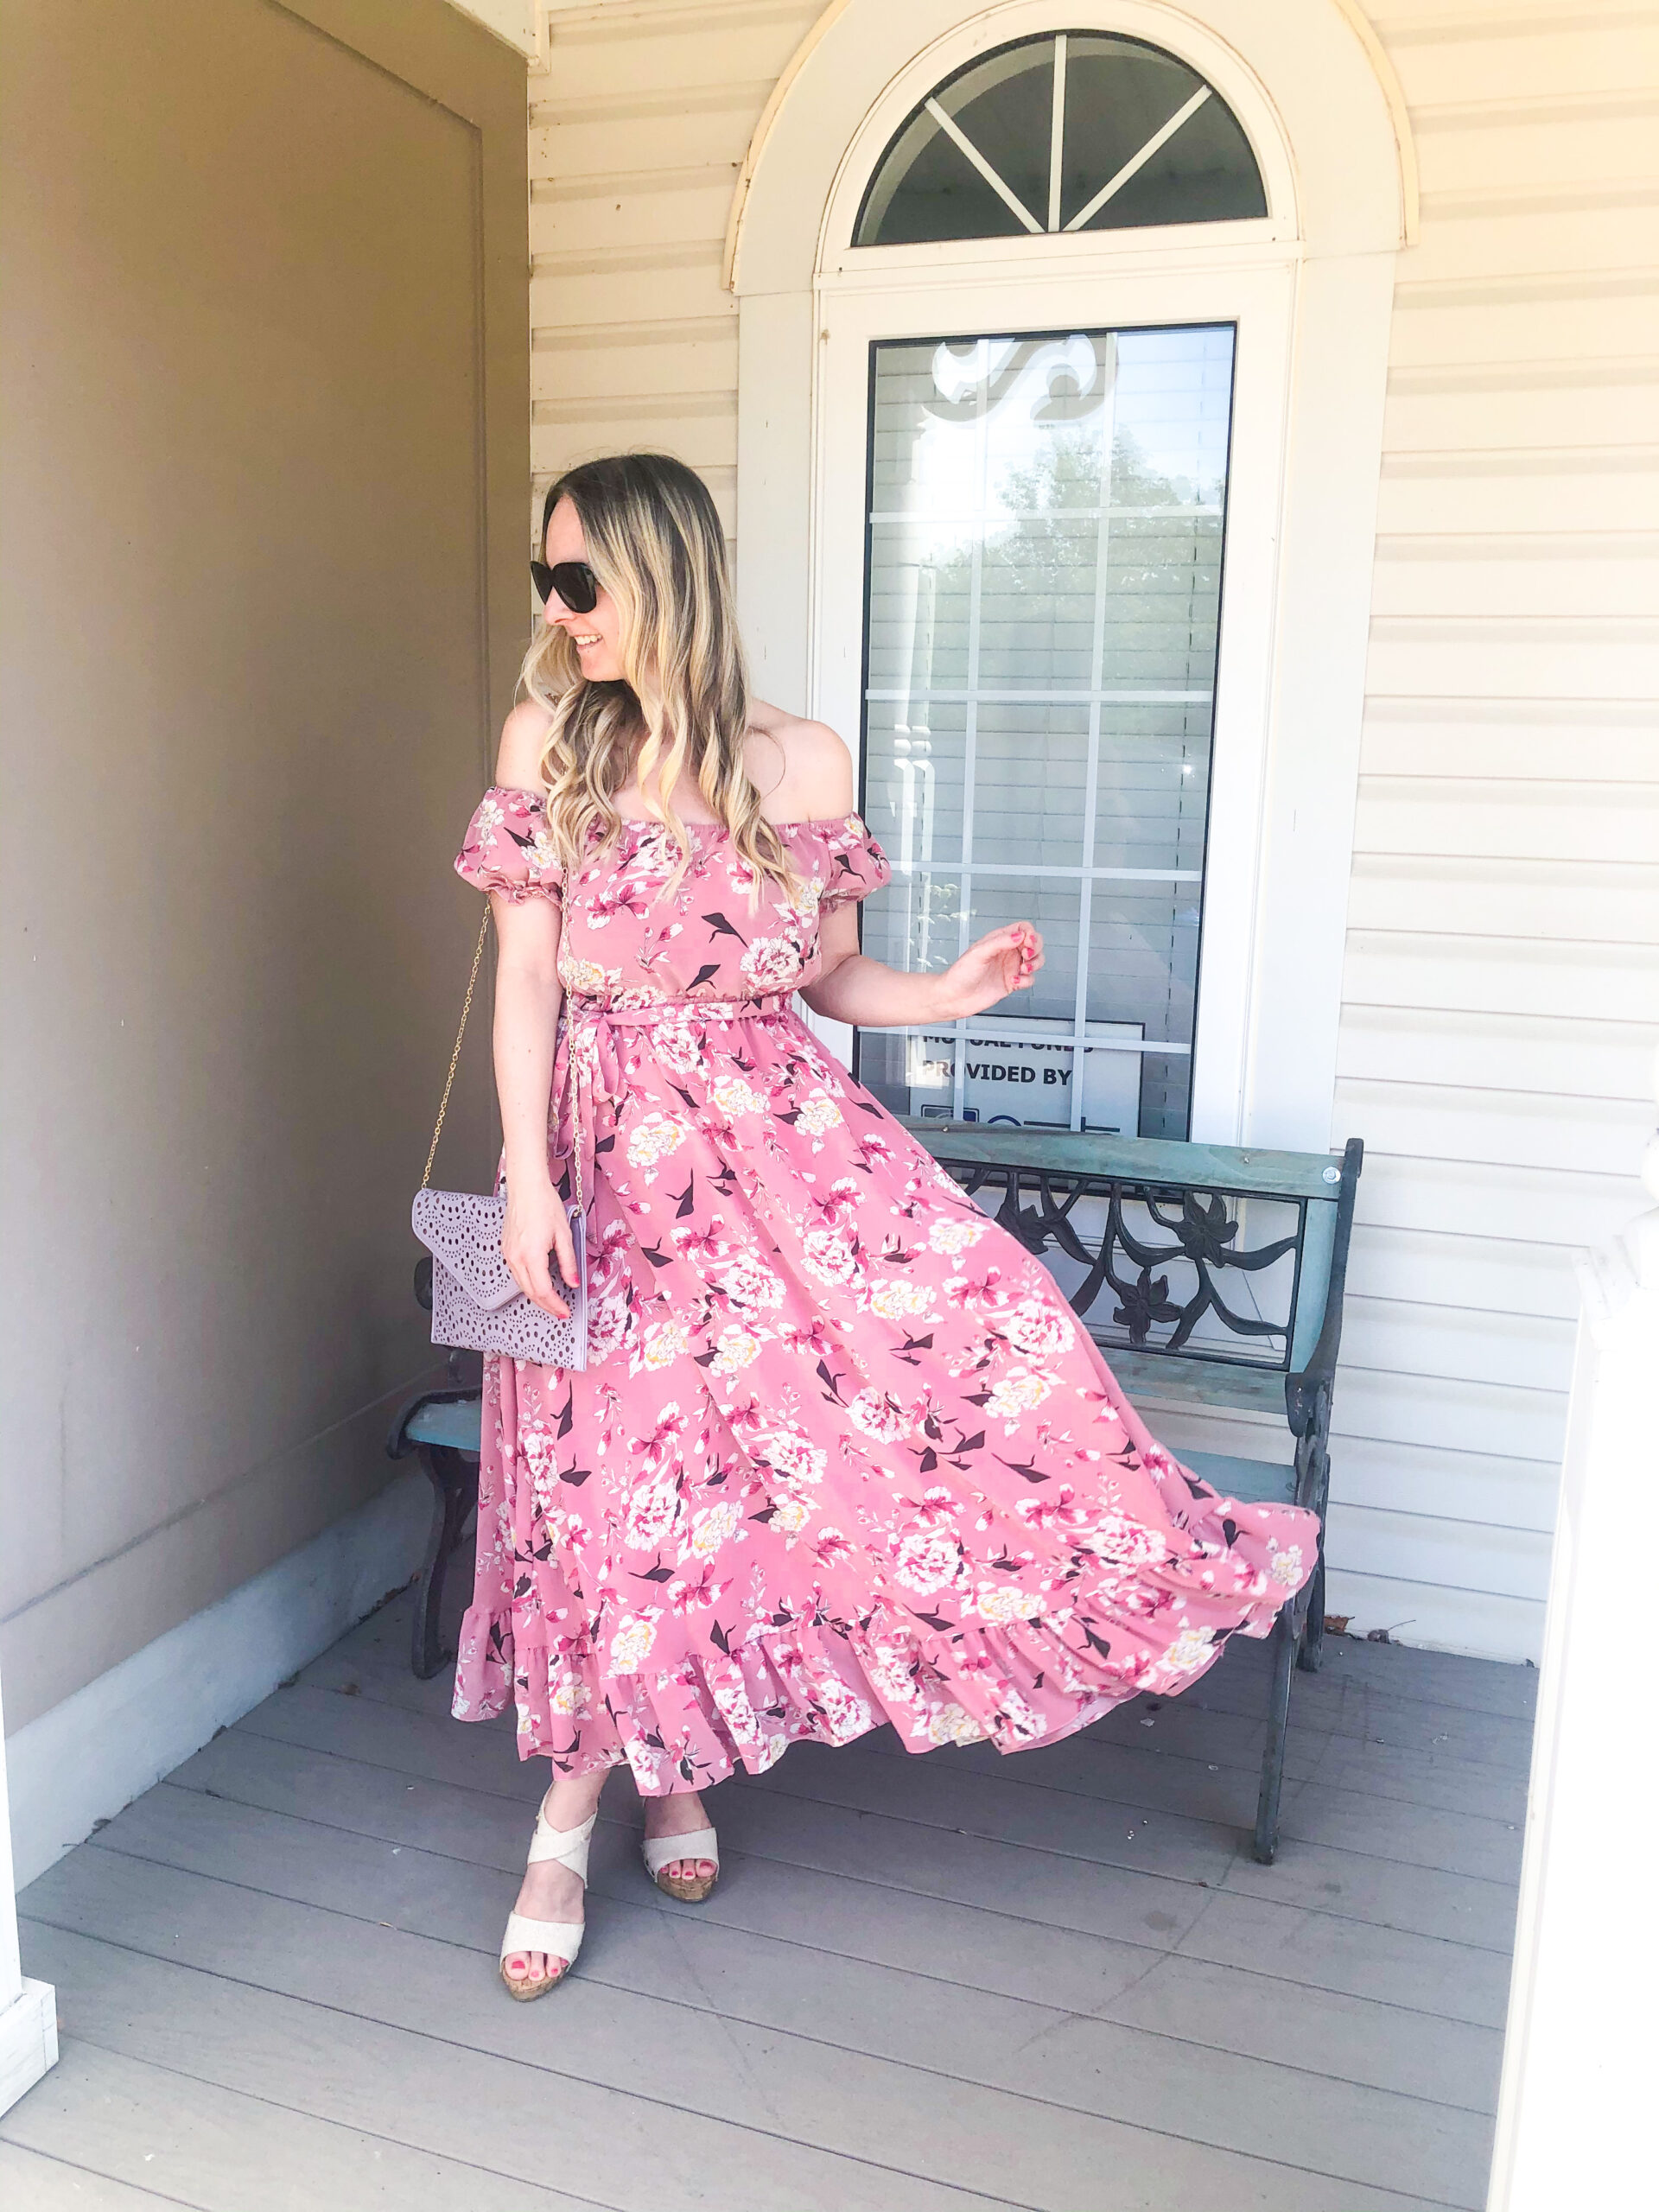 Shein pink floral off the shoulder dress on Livin' Life with Style